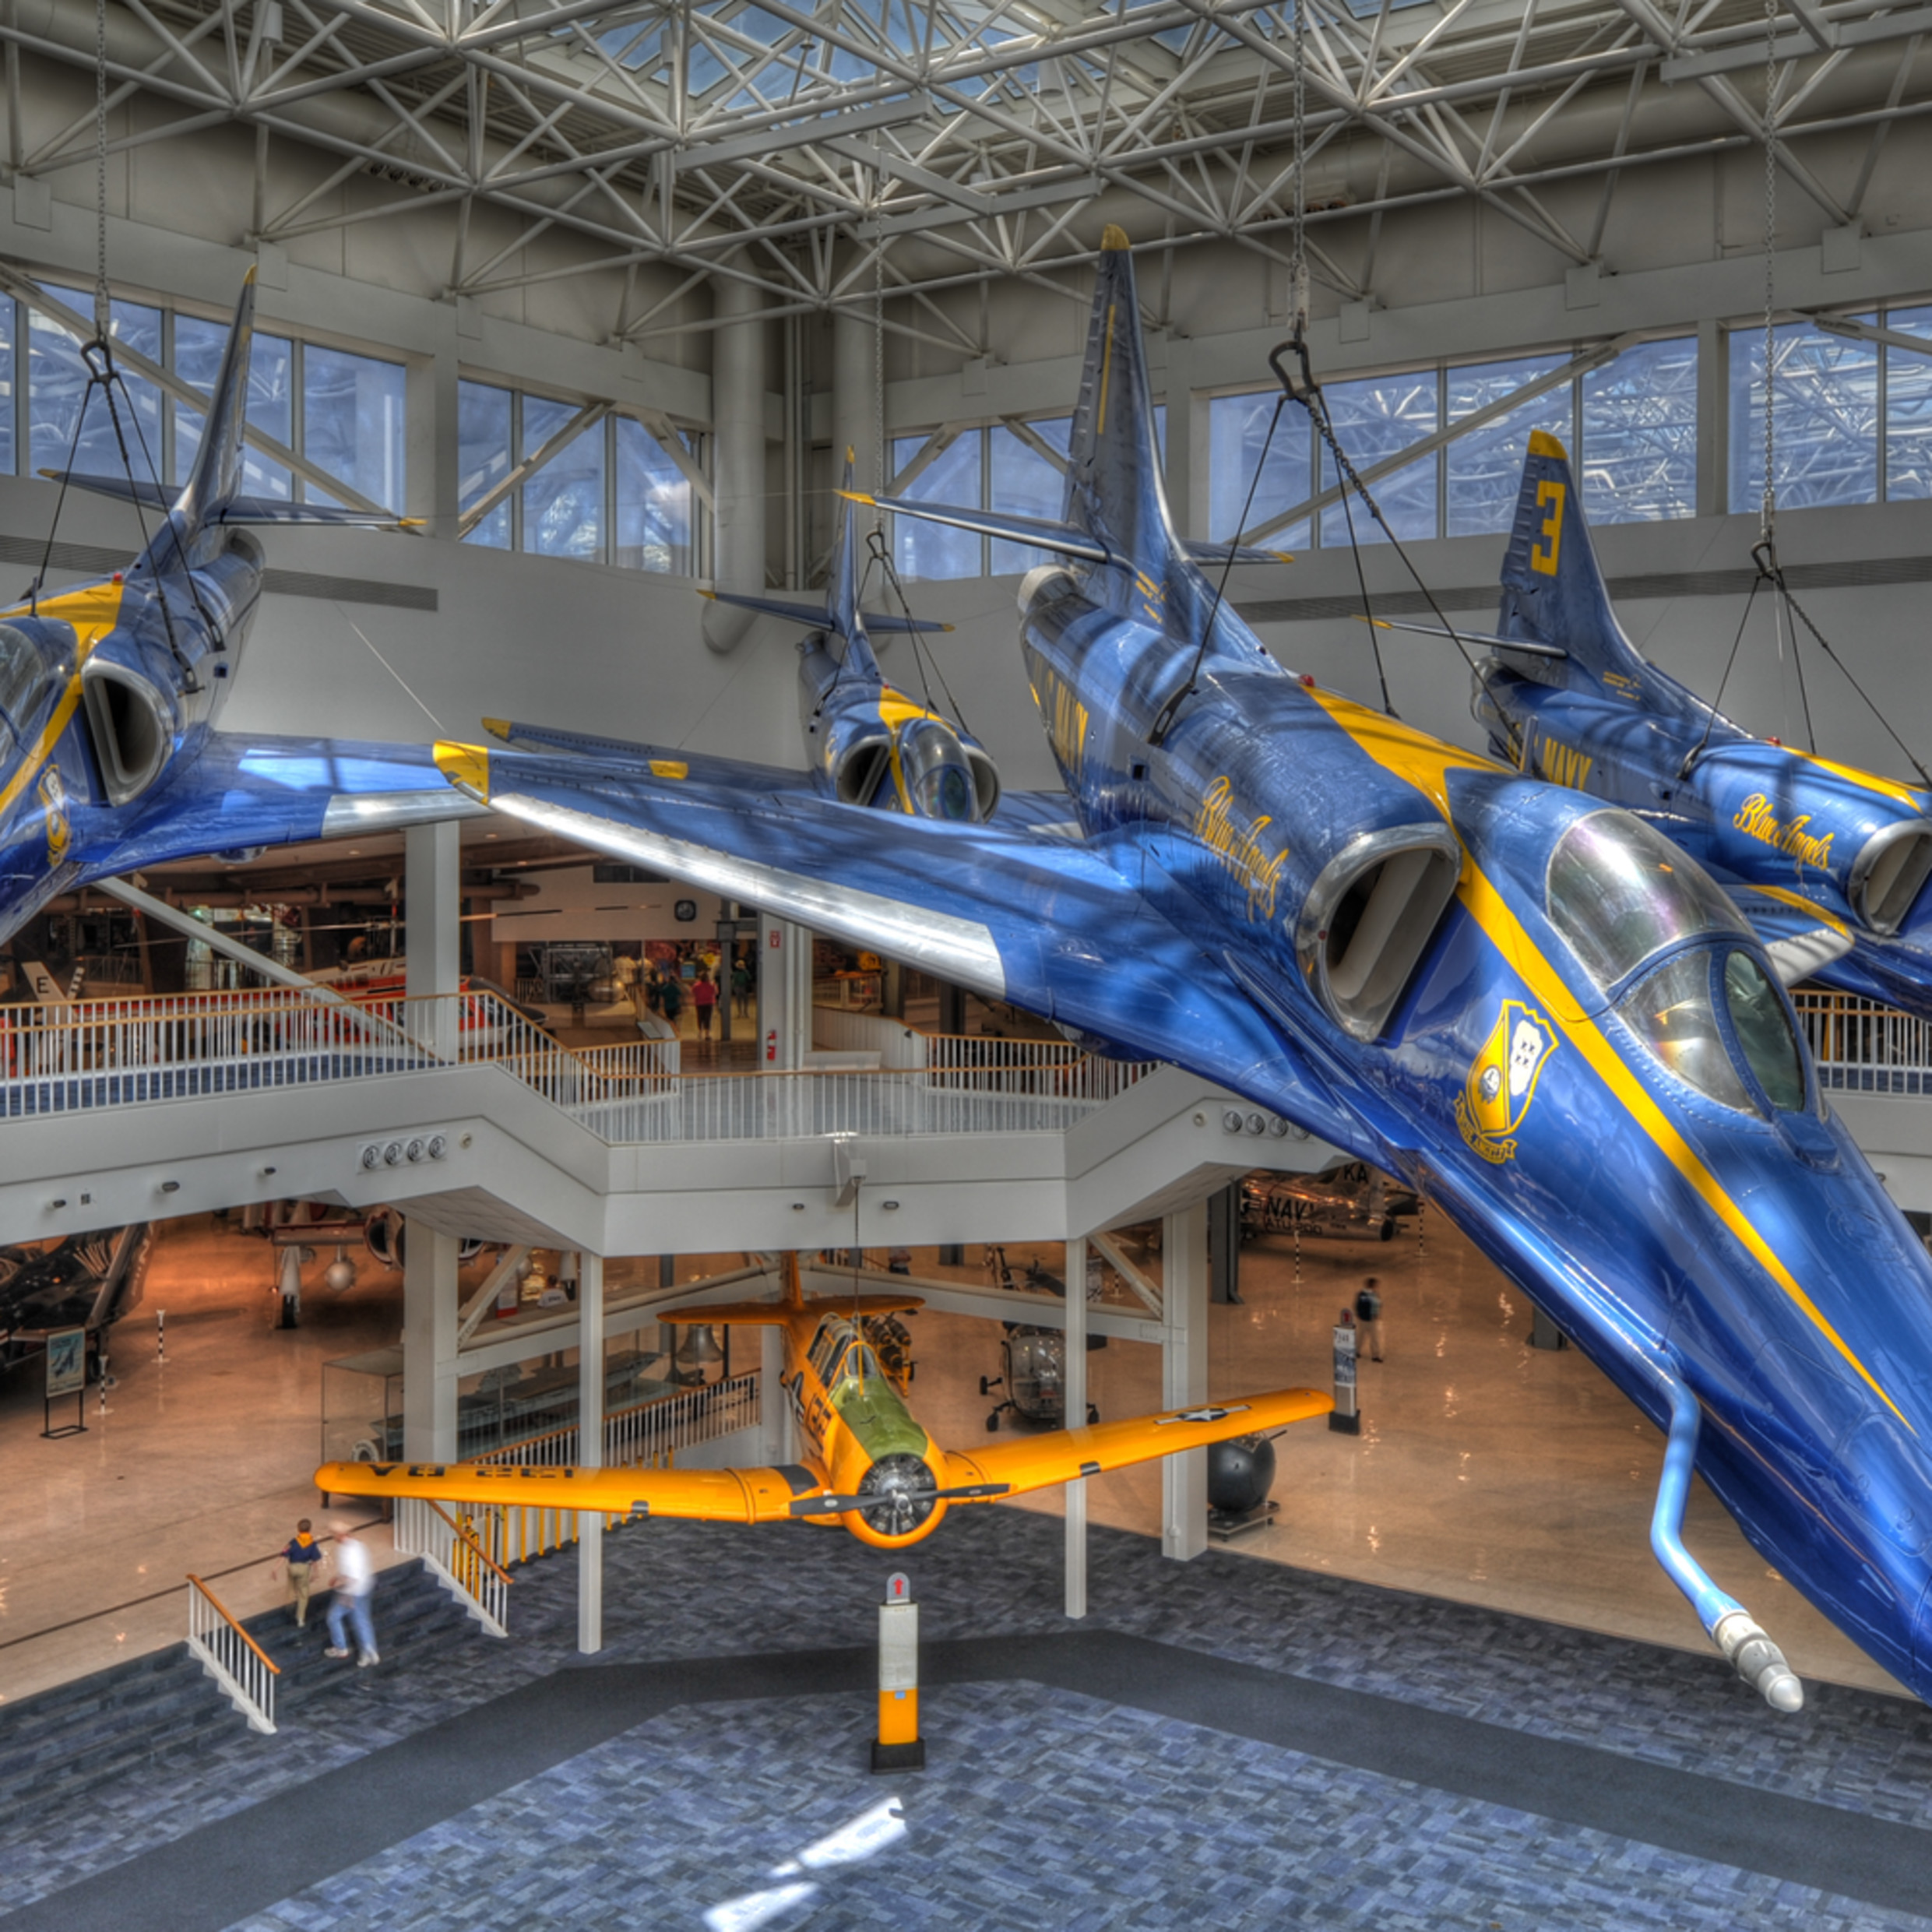 1104 naval aviation museum 0418 20 22 24 26 c378vk